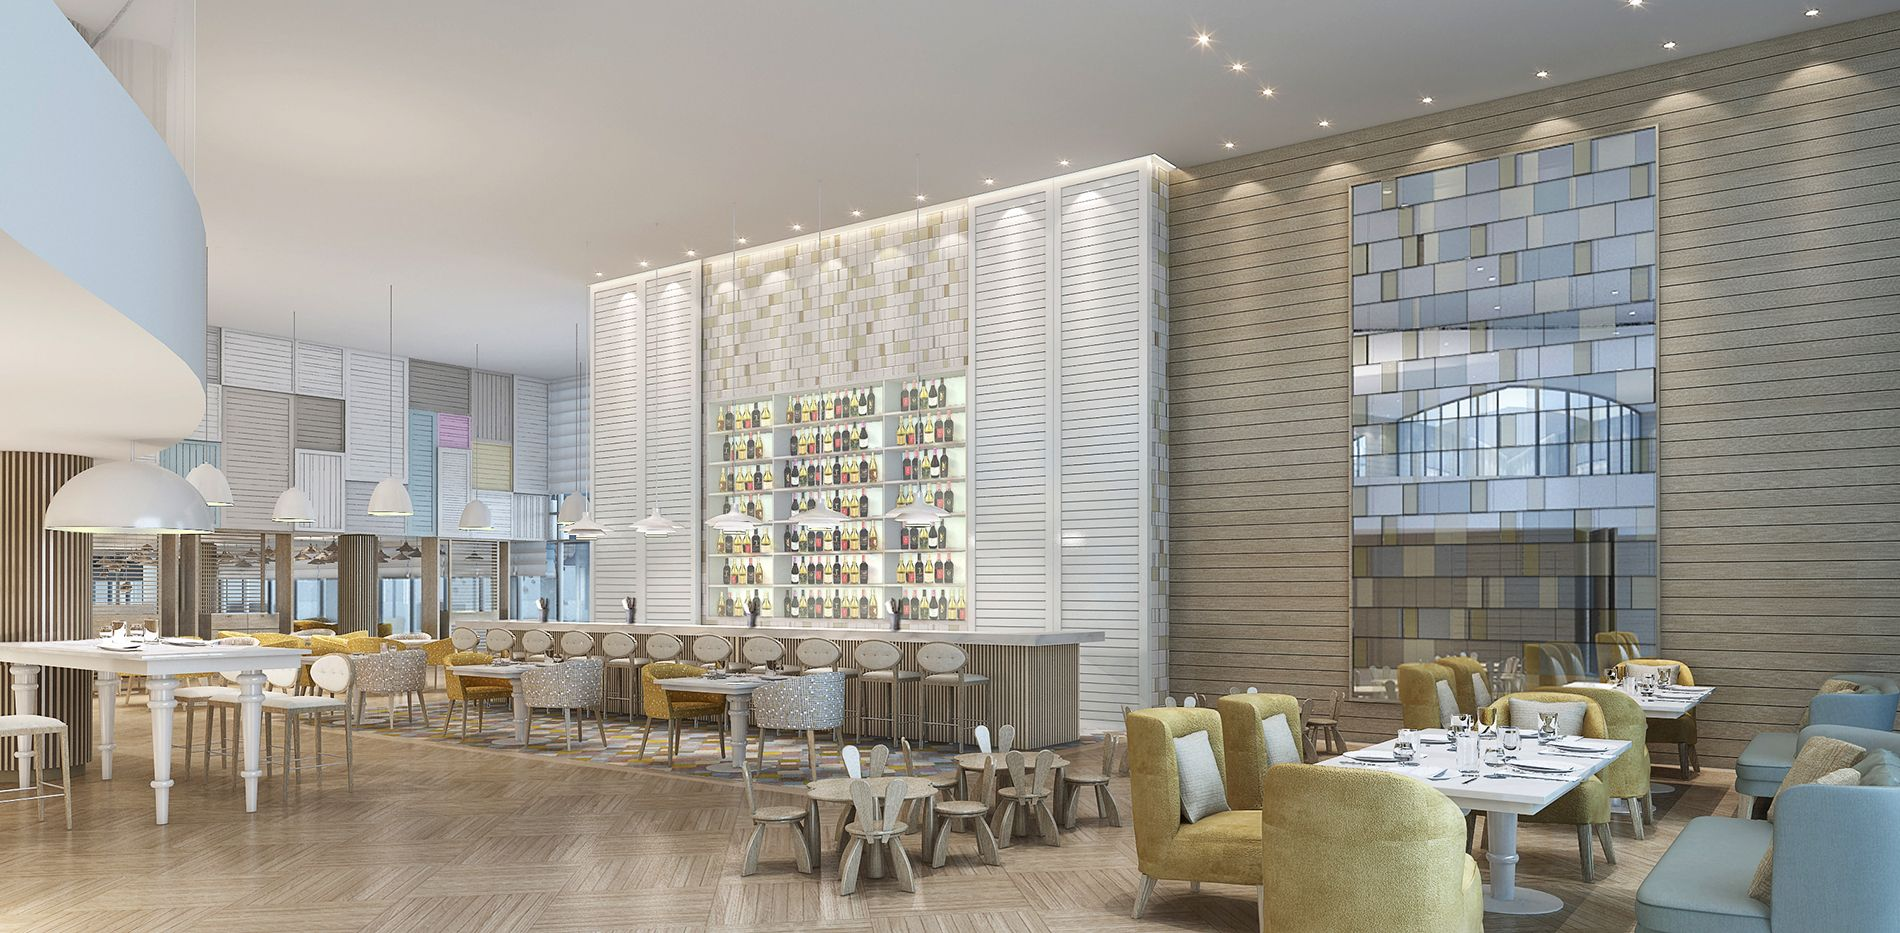 Langham Dining Room Beauteous Langham Hospitality Group Enters The Middle East With The Langham Design Inspiration